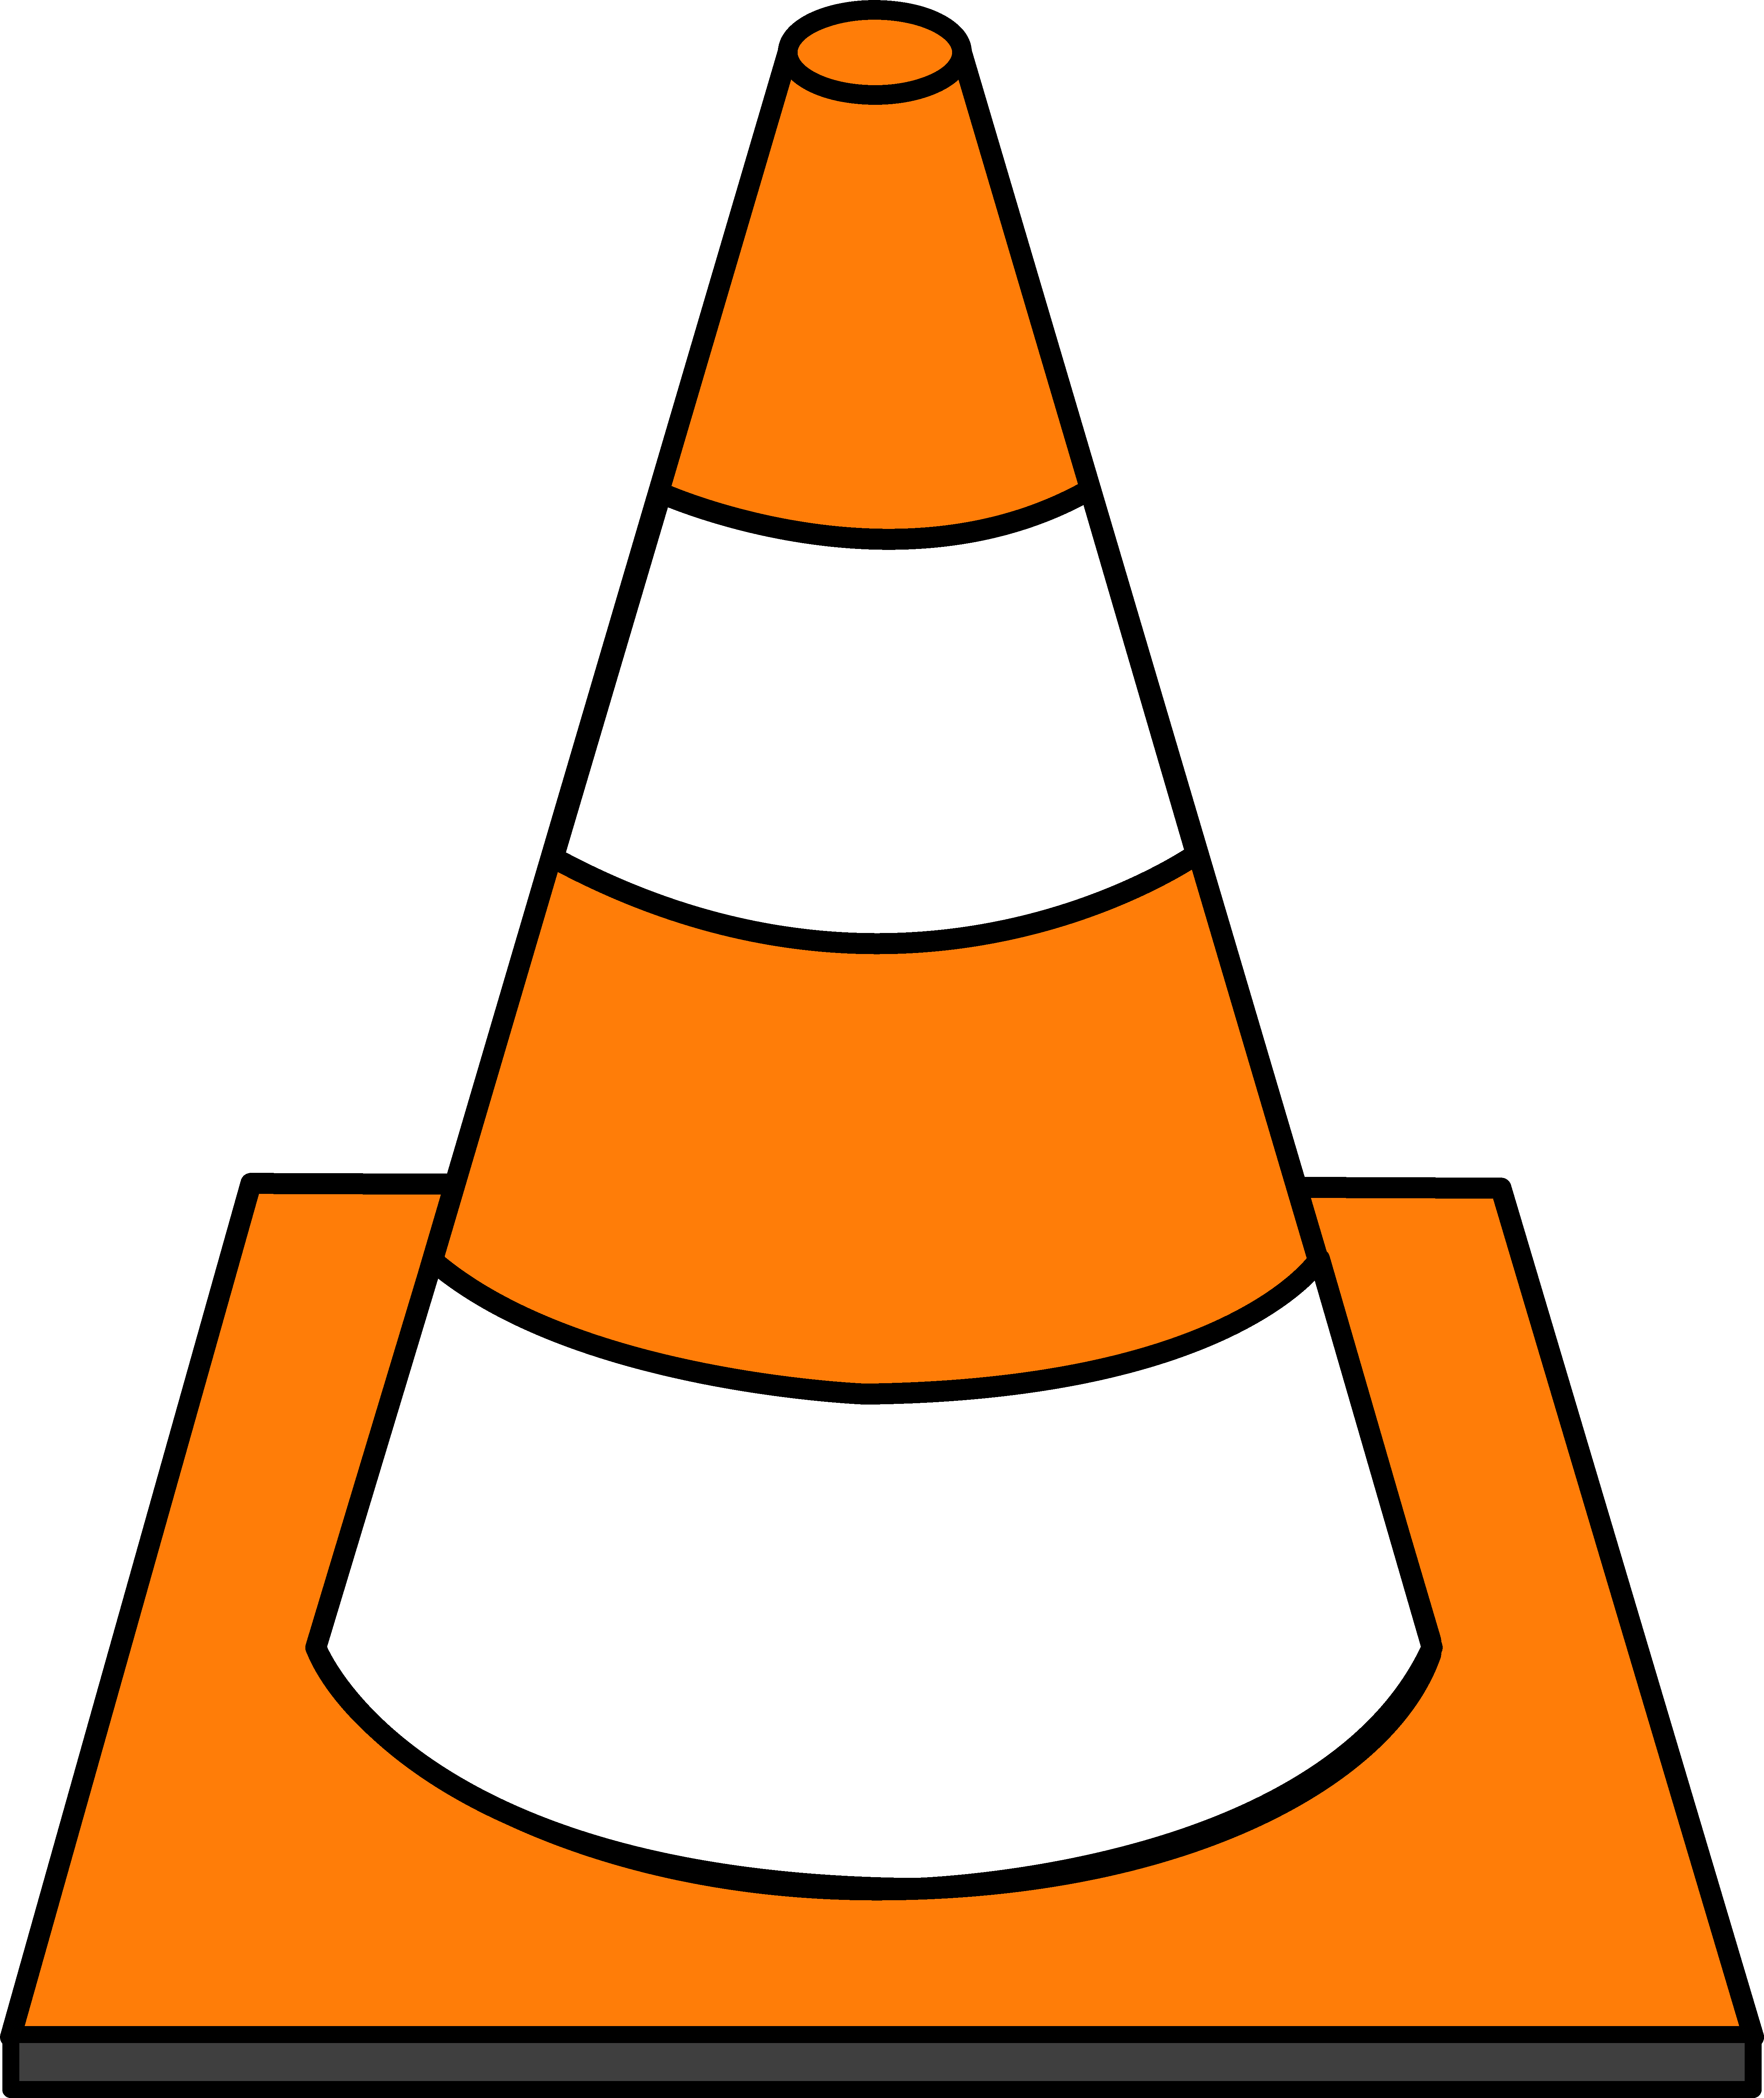 Cone clipart #1, Download drawings